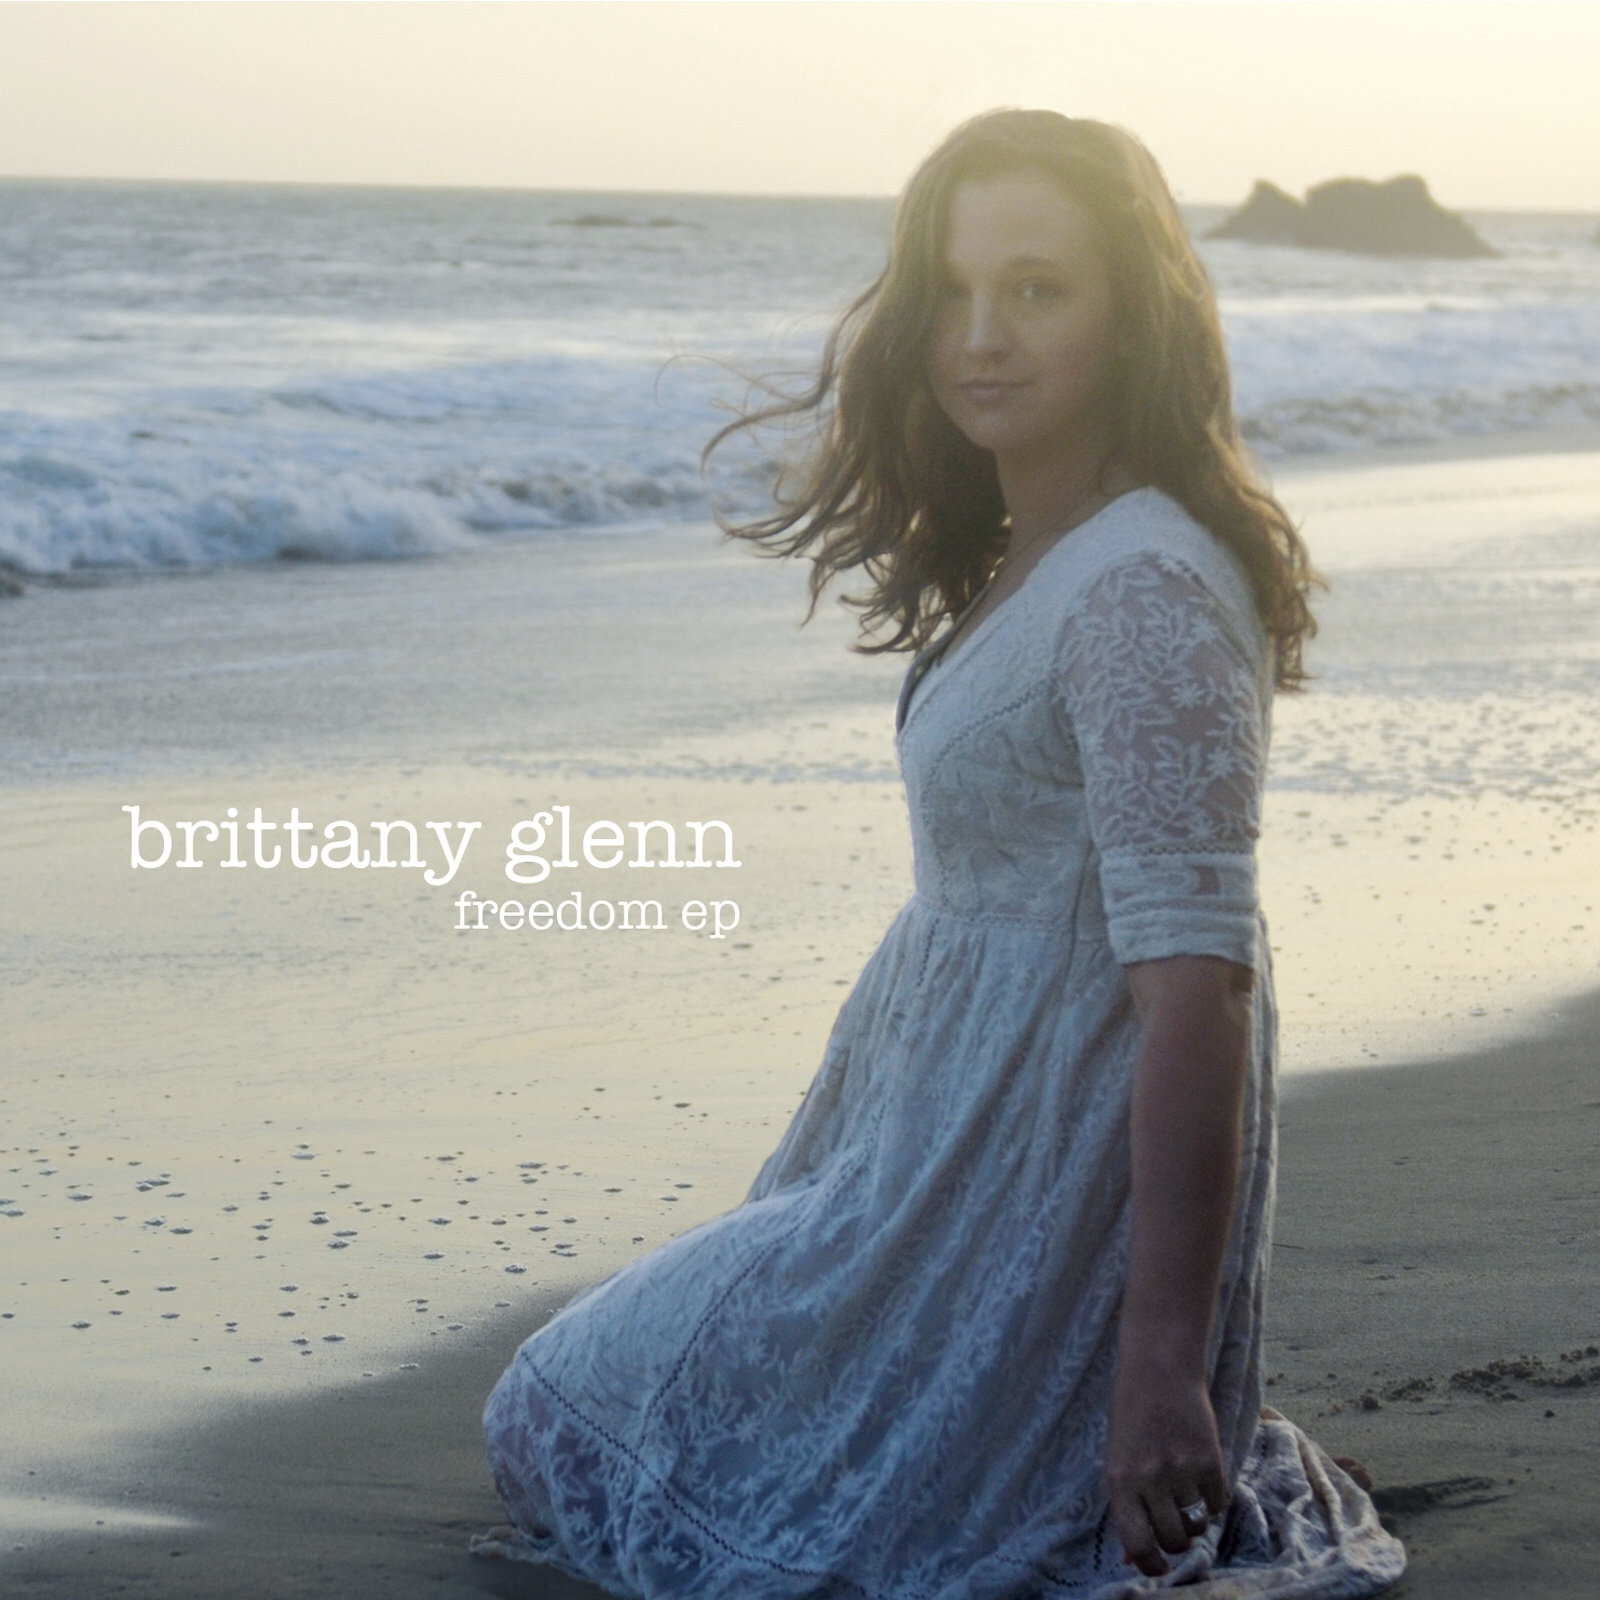 the highly anticipated second album by brittany glenn - available everywhere June 14thlisten to the digital album nowget your signed copy here